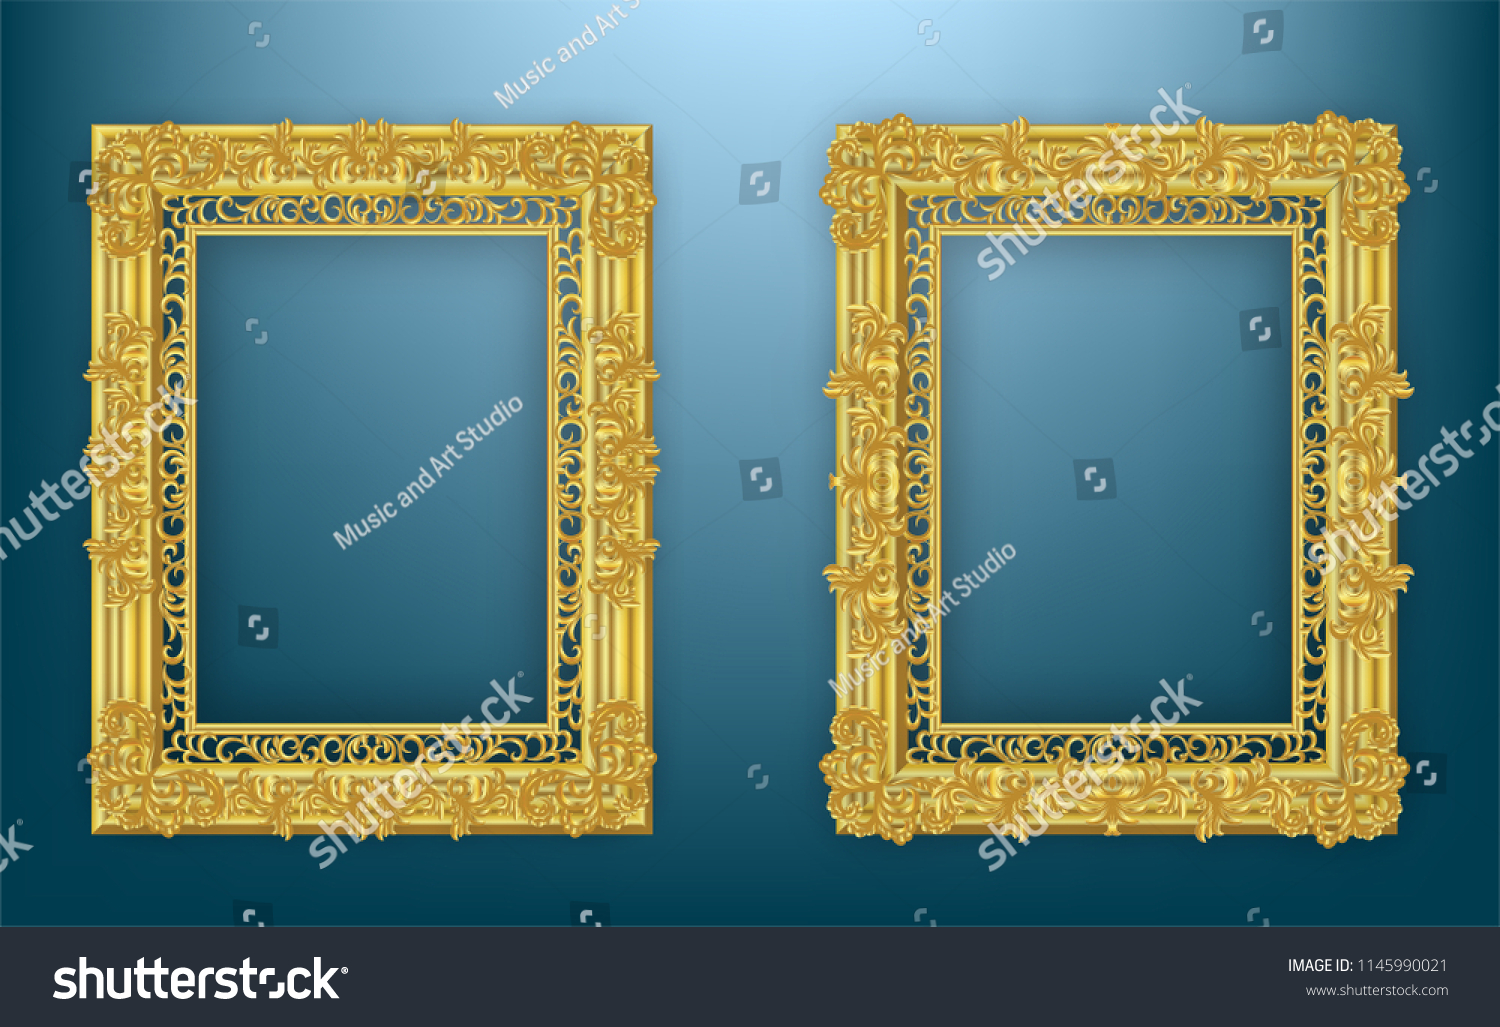 1da3e79449d Gold frame. with borders floral Baroque for picture.Set of Decorative  vintage frames and.